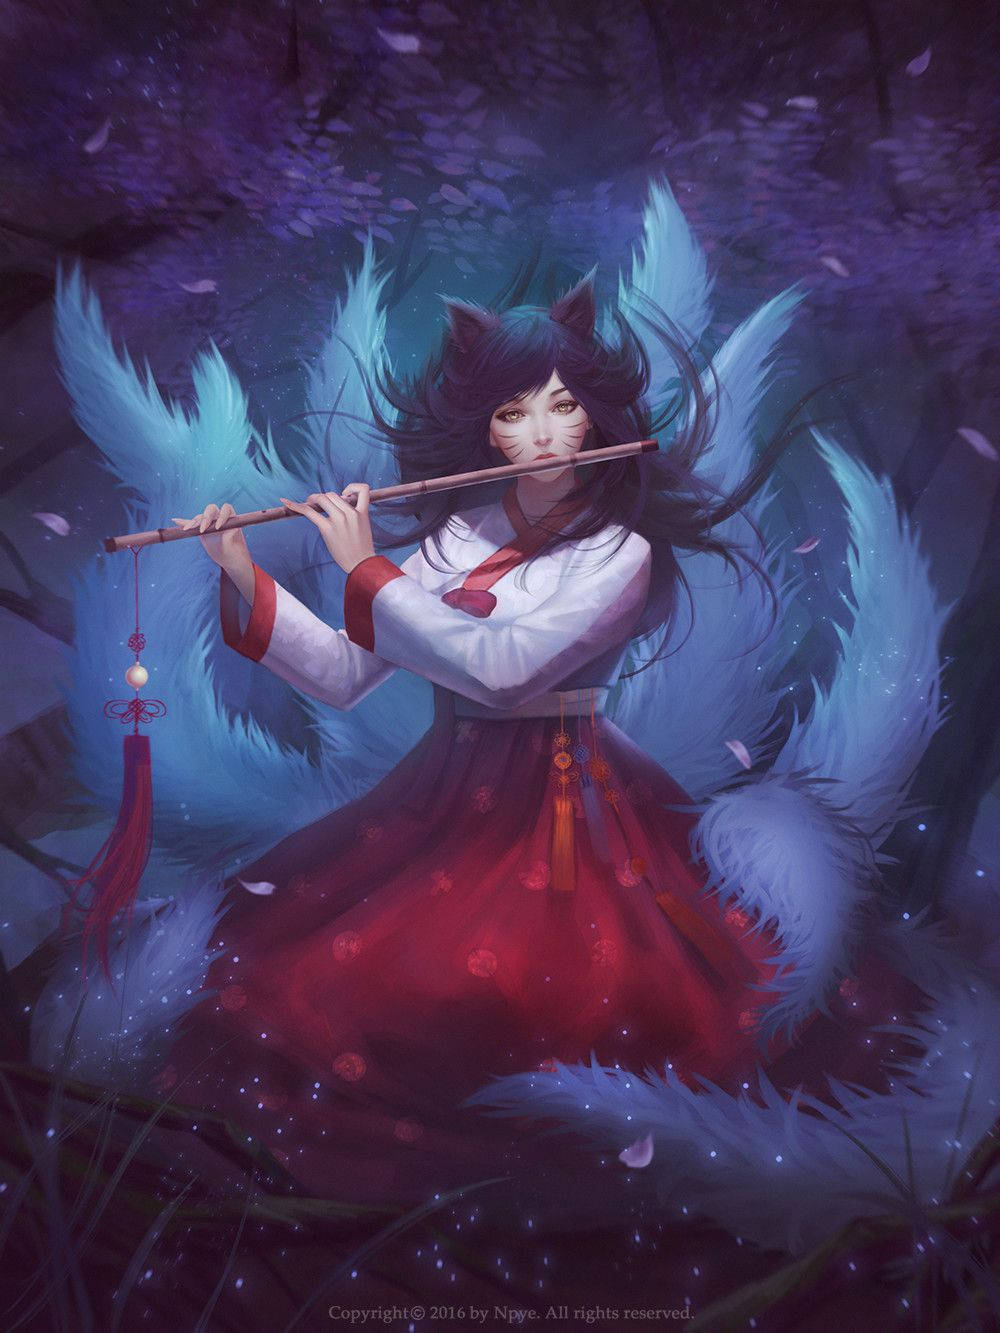 Pin By Wogie On Inspirations Lol League Of Legends Ahri